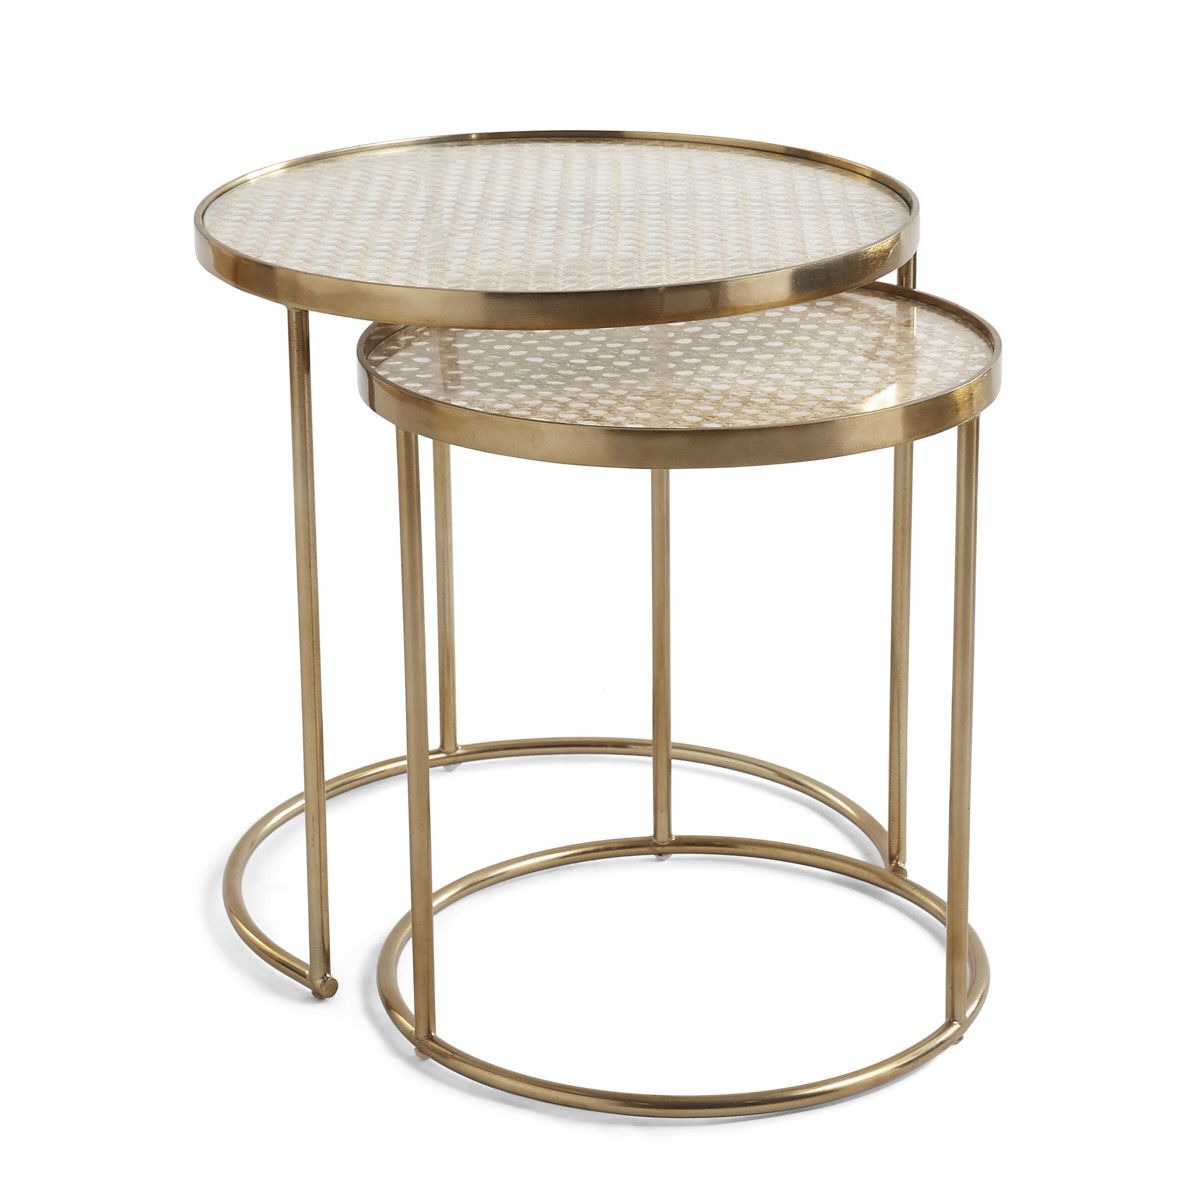 Tasmanian Tiger Look Alike Sprinkled Nest Interiors In 2021 Side Table Living Room Side Table Iron Frame Table [ 1200 x 1200 Pixel ]